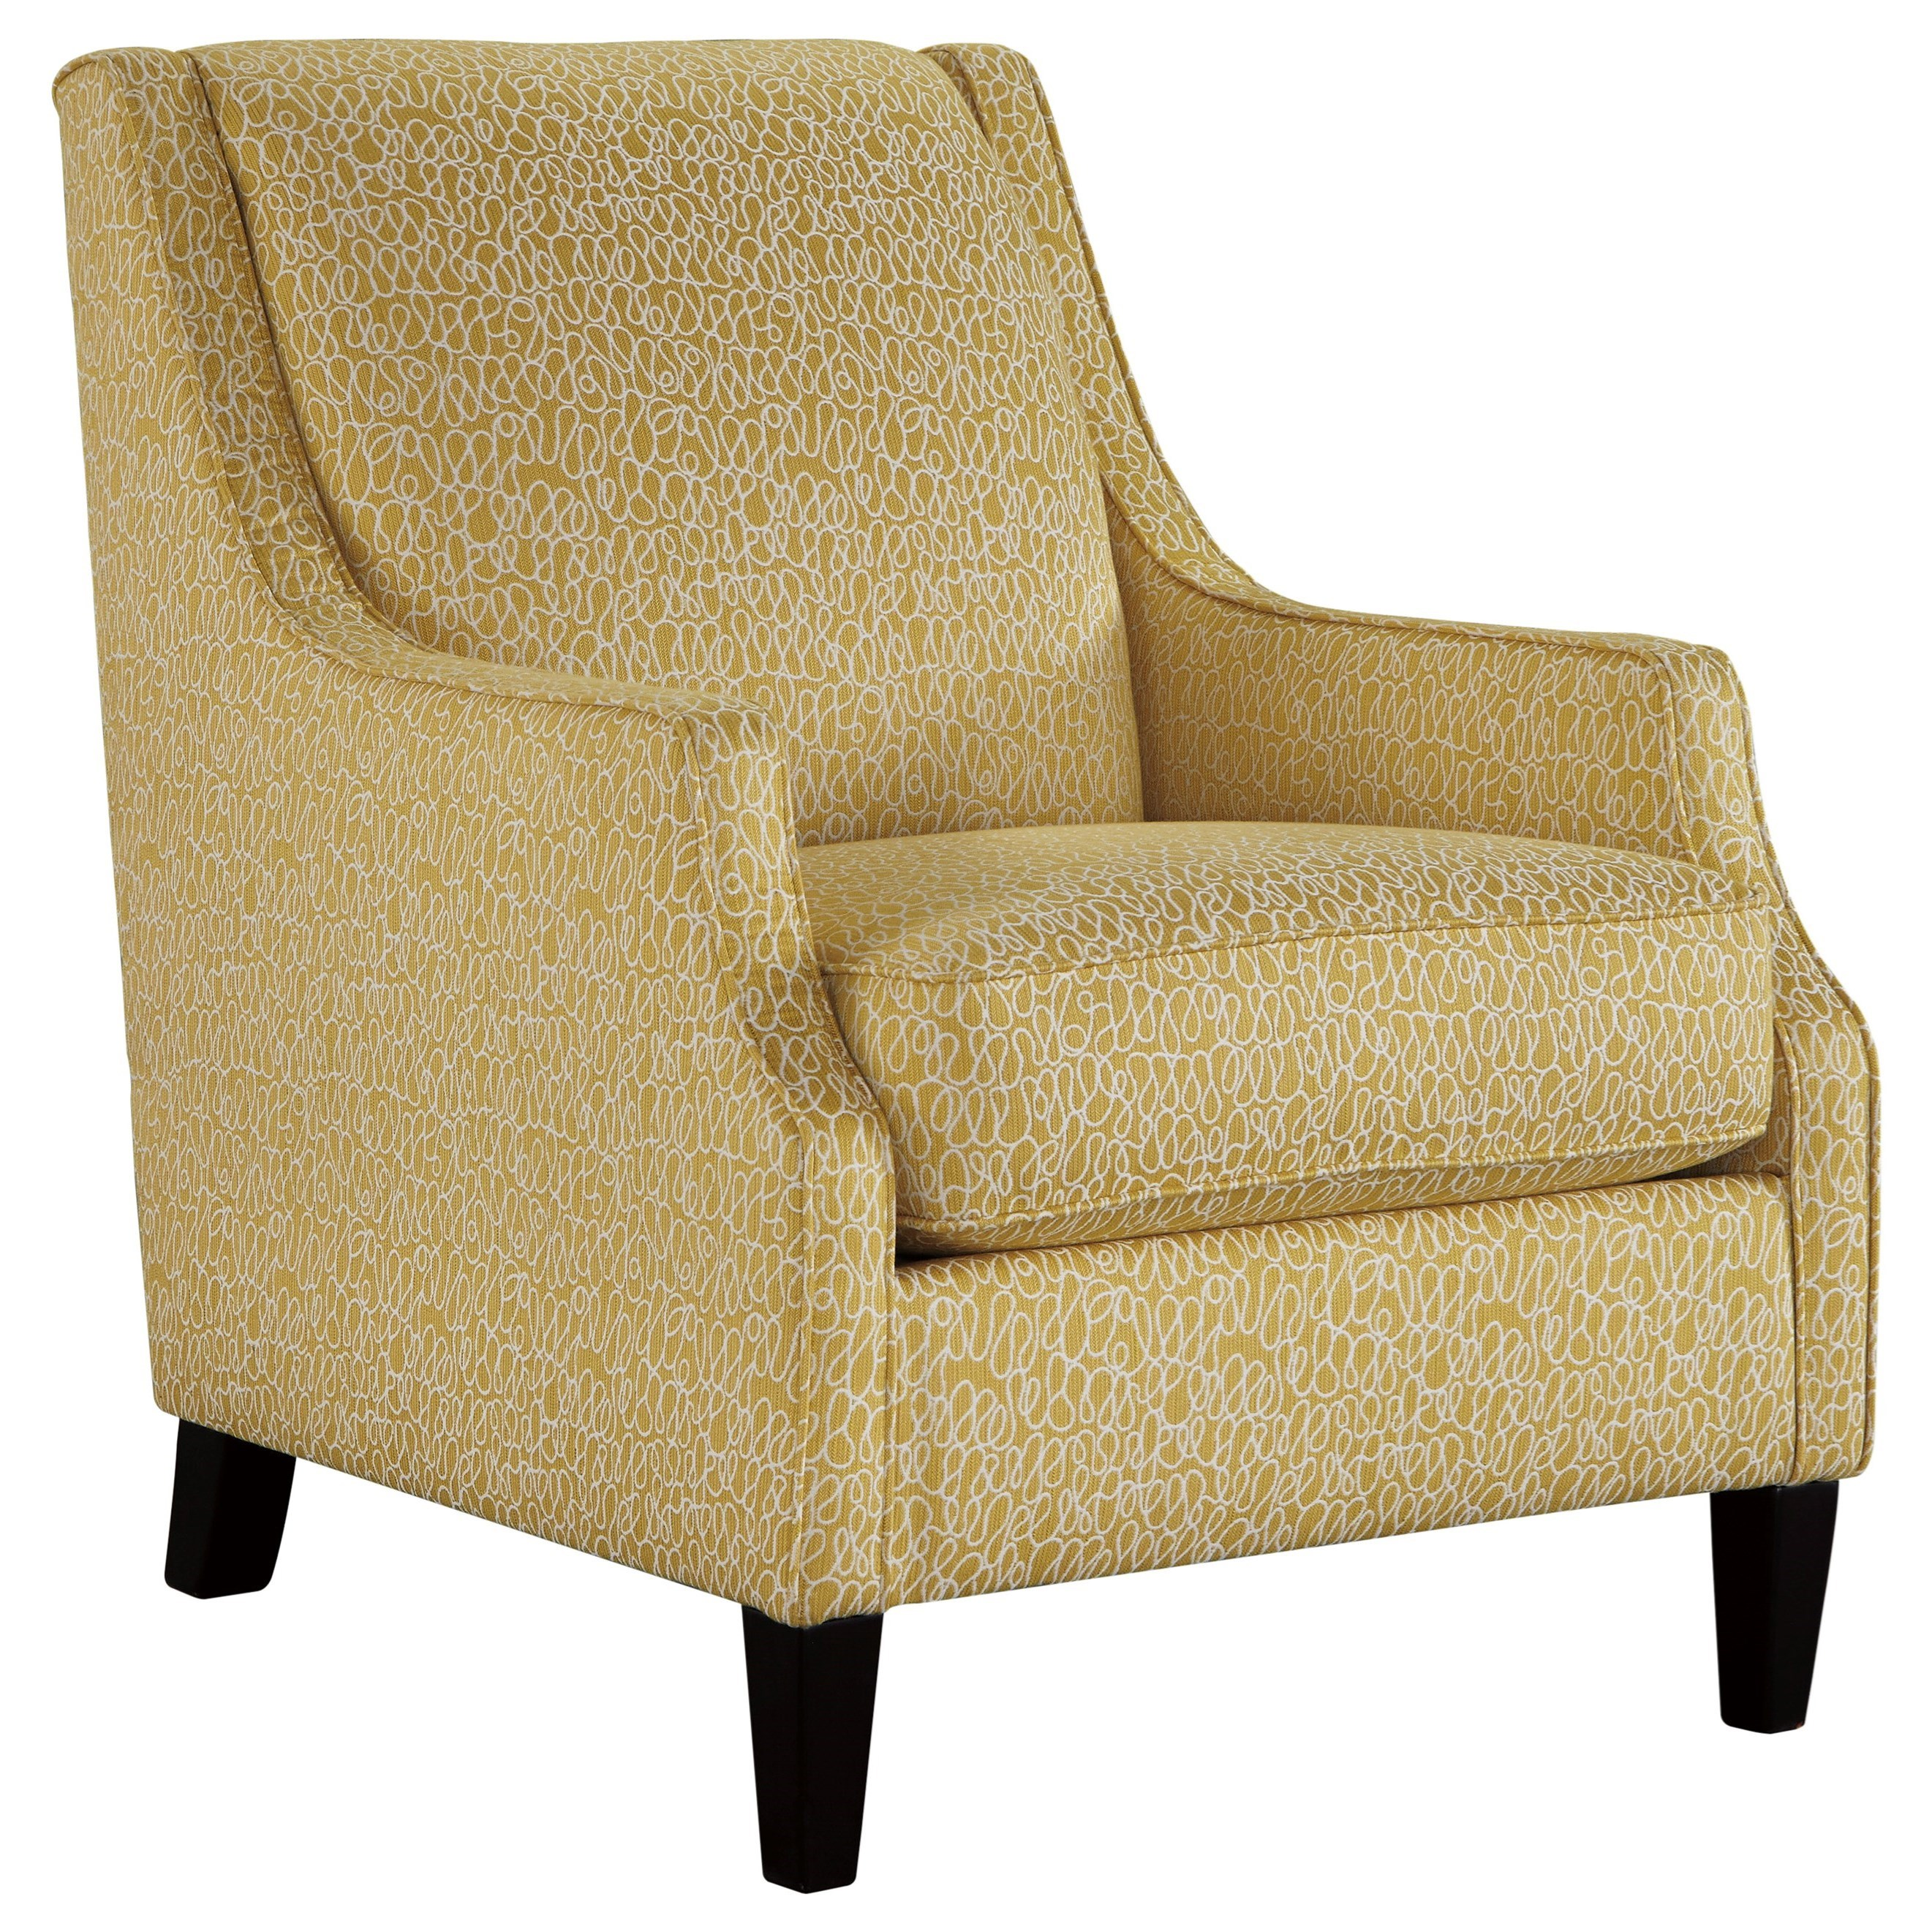 Benchcraft Cresson Accent Chair - Item Number: 5490721